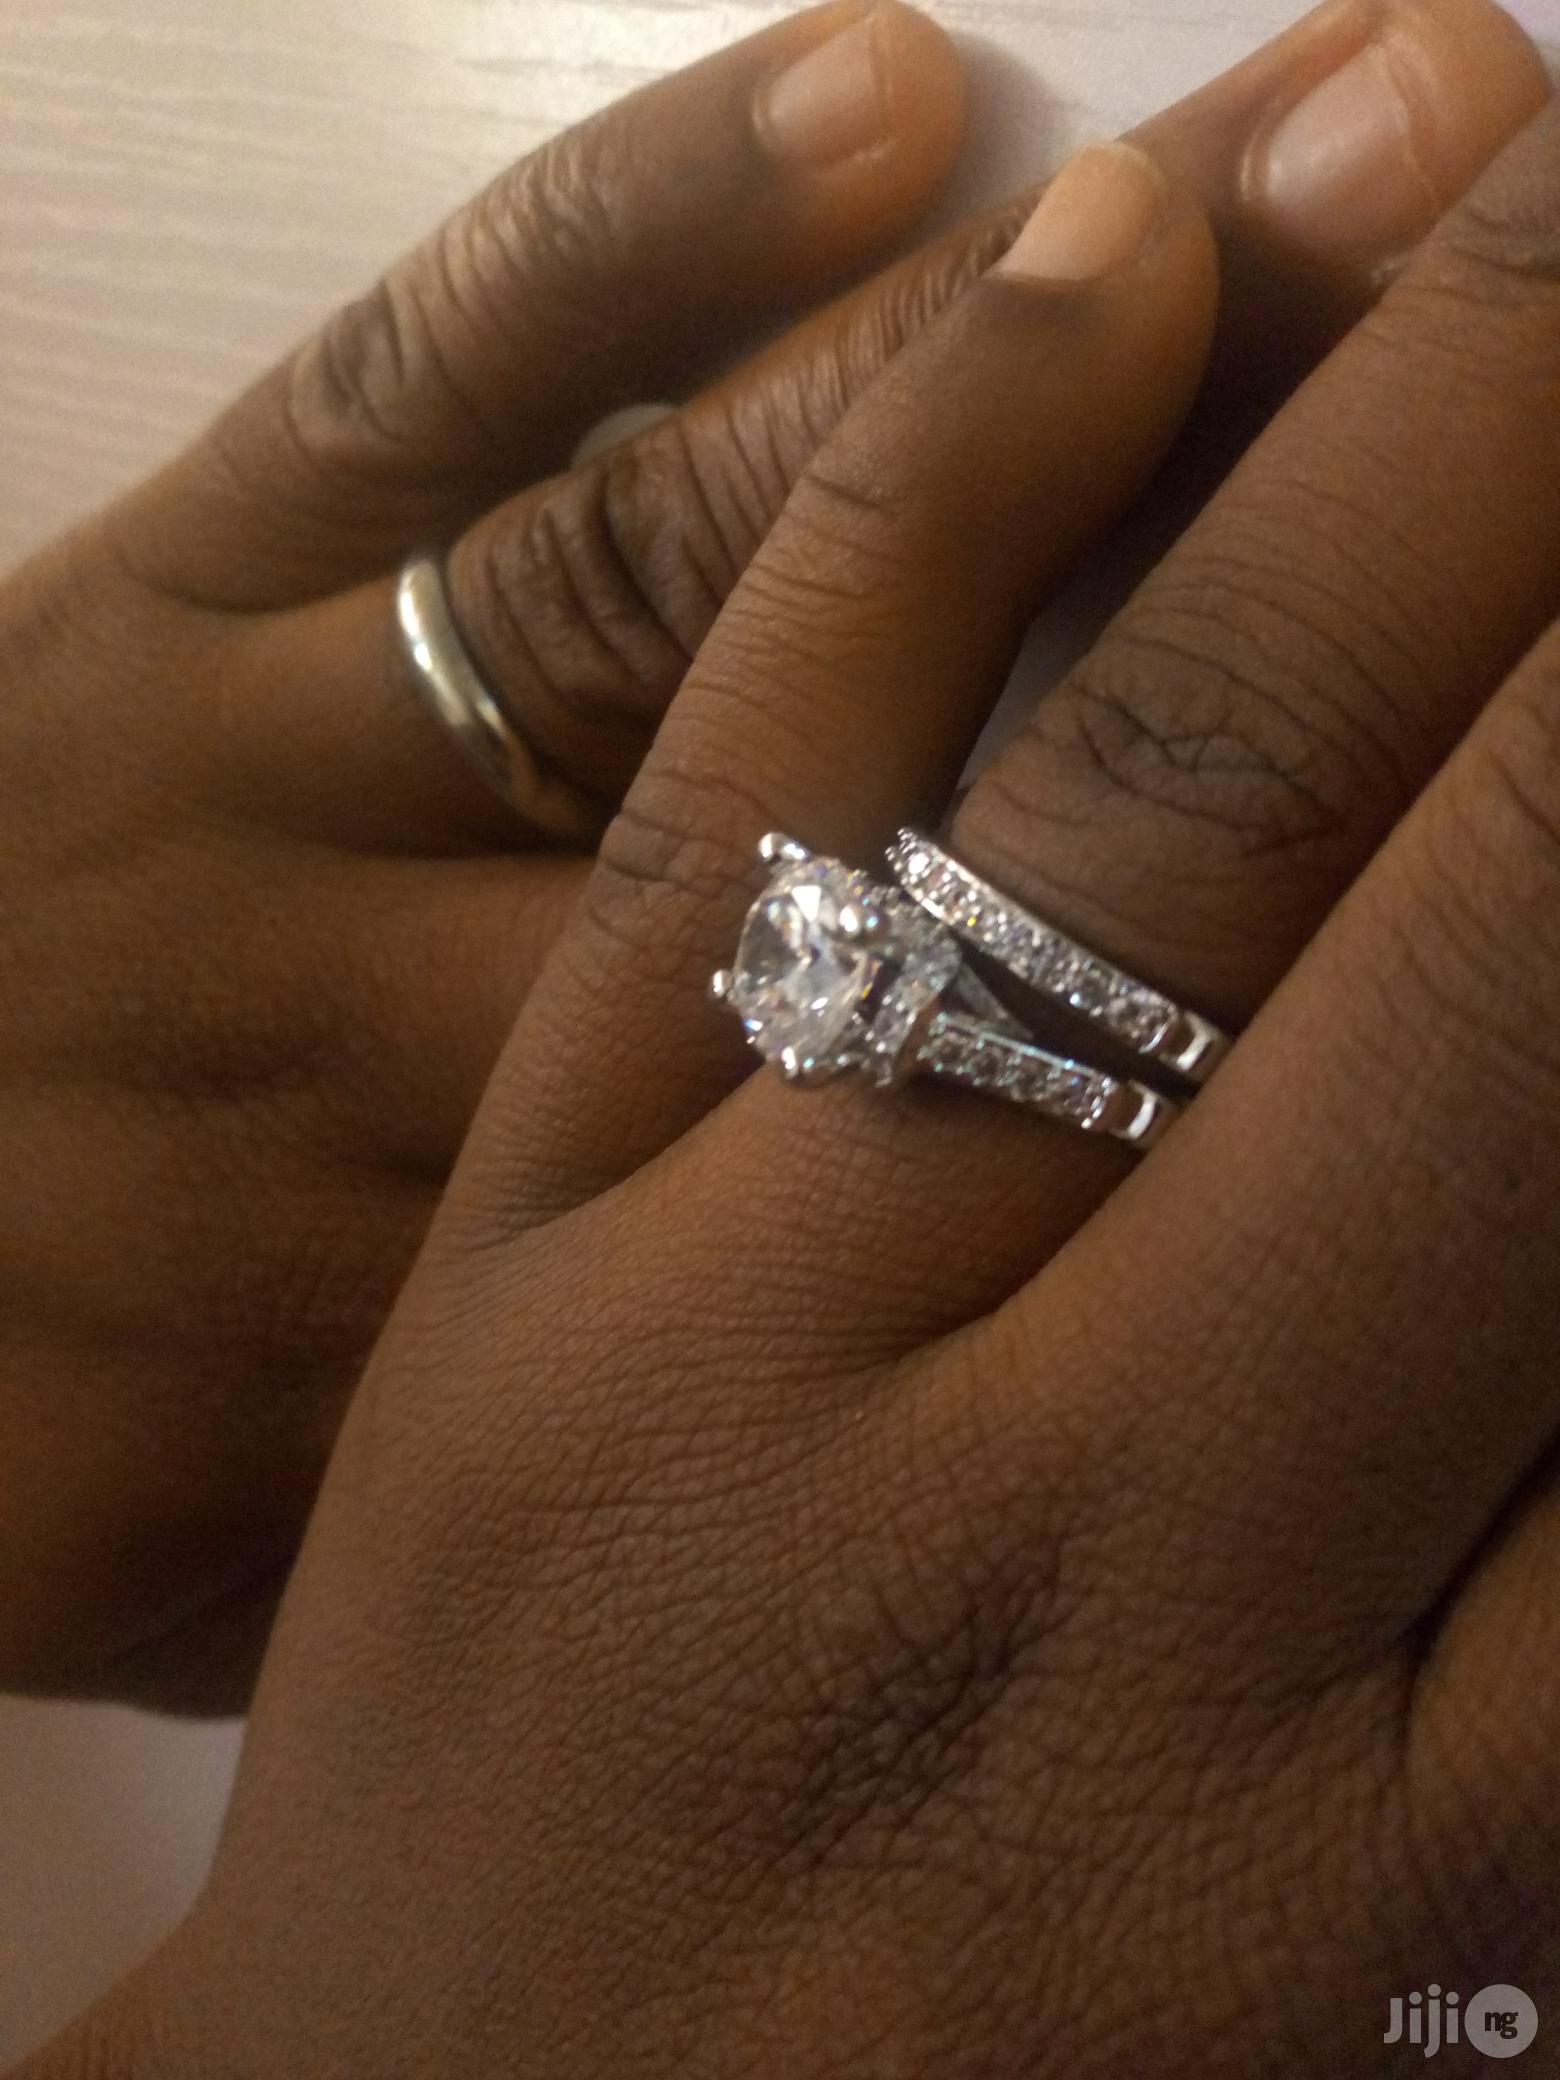 Silver Plated Wedding Ring Set | Wedding Wear & Accessories for sale in Alimosho, Lagos State, Nigeria